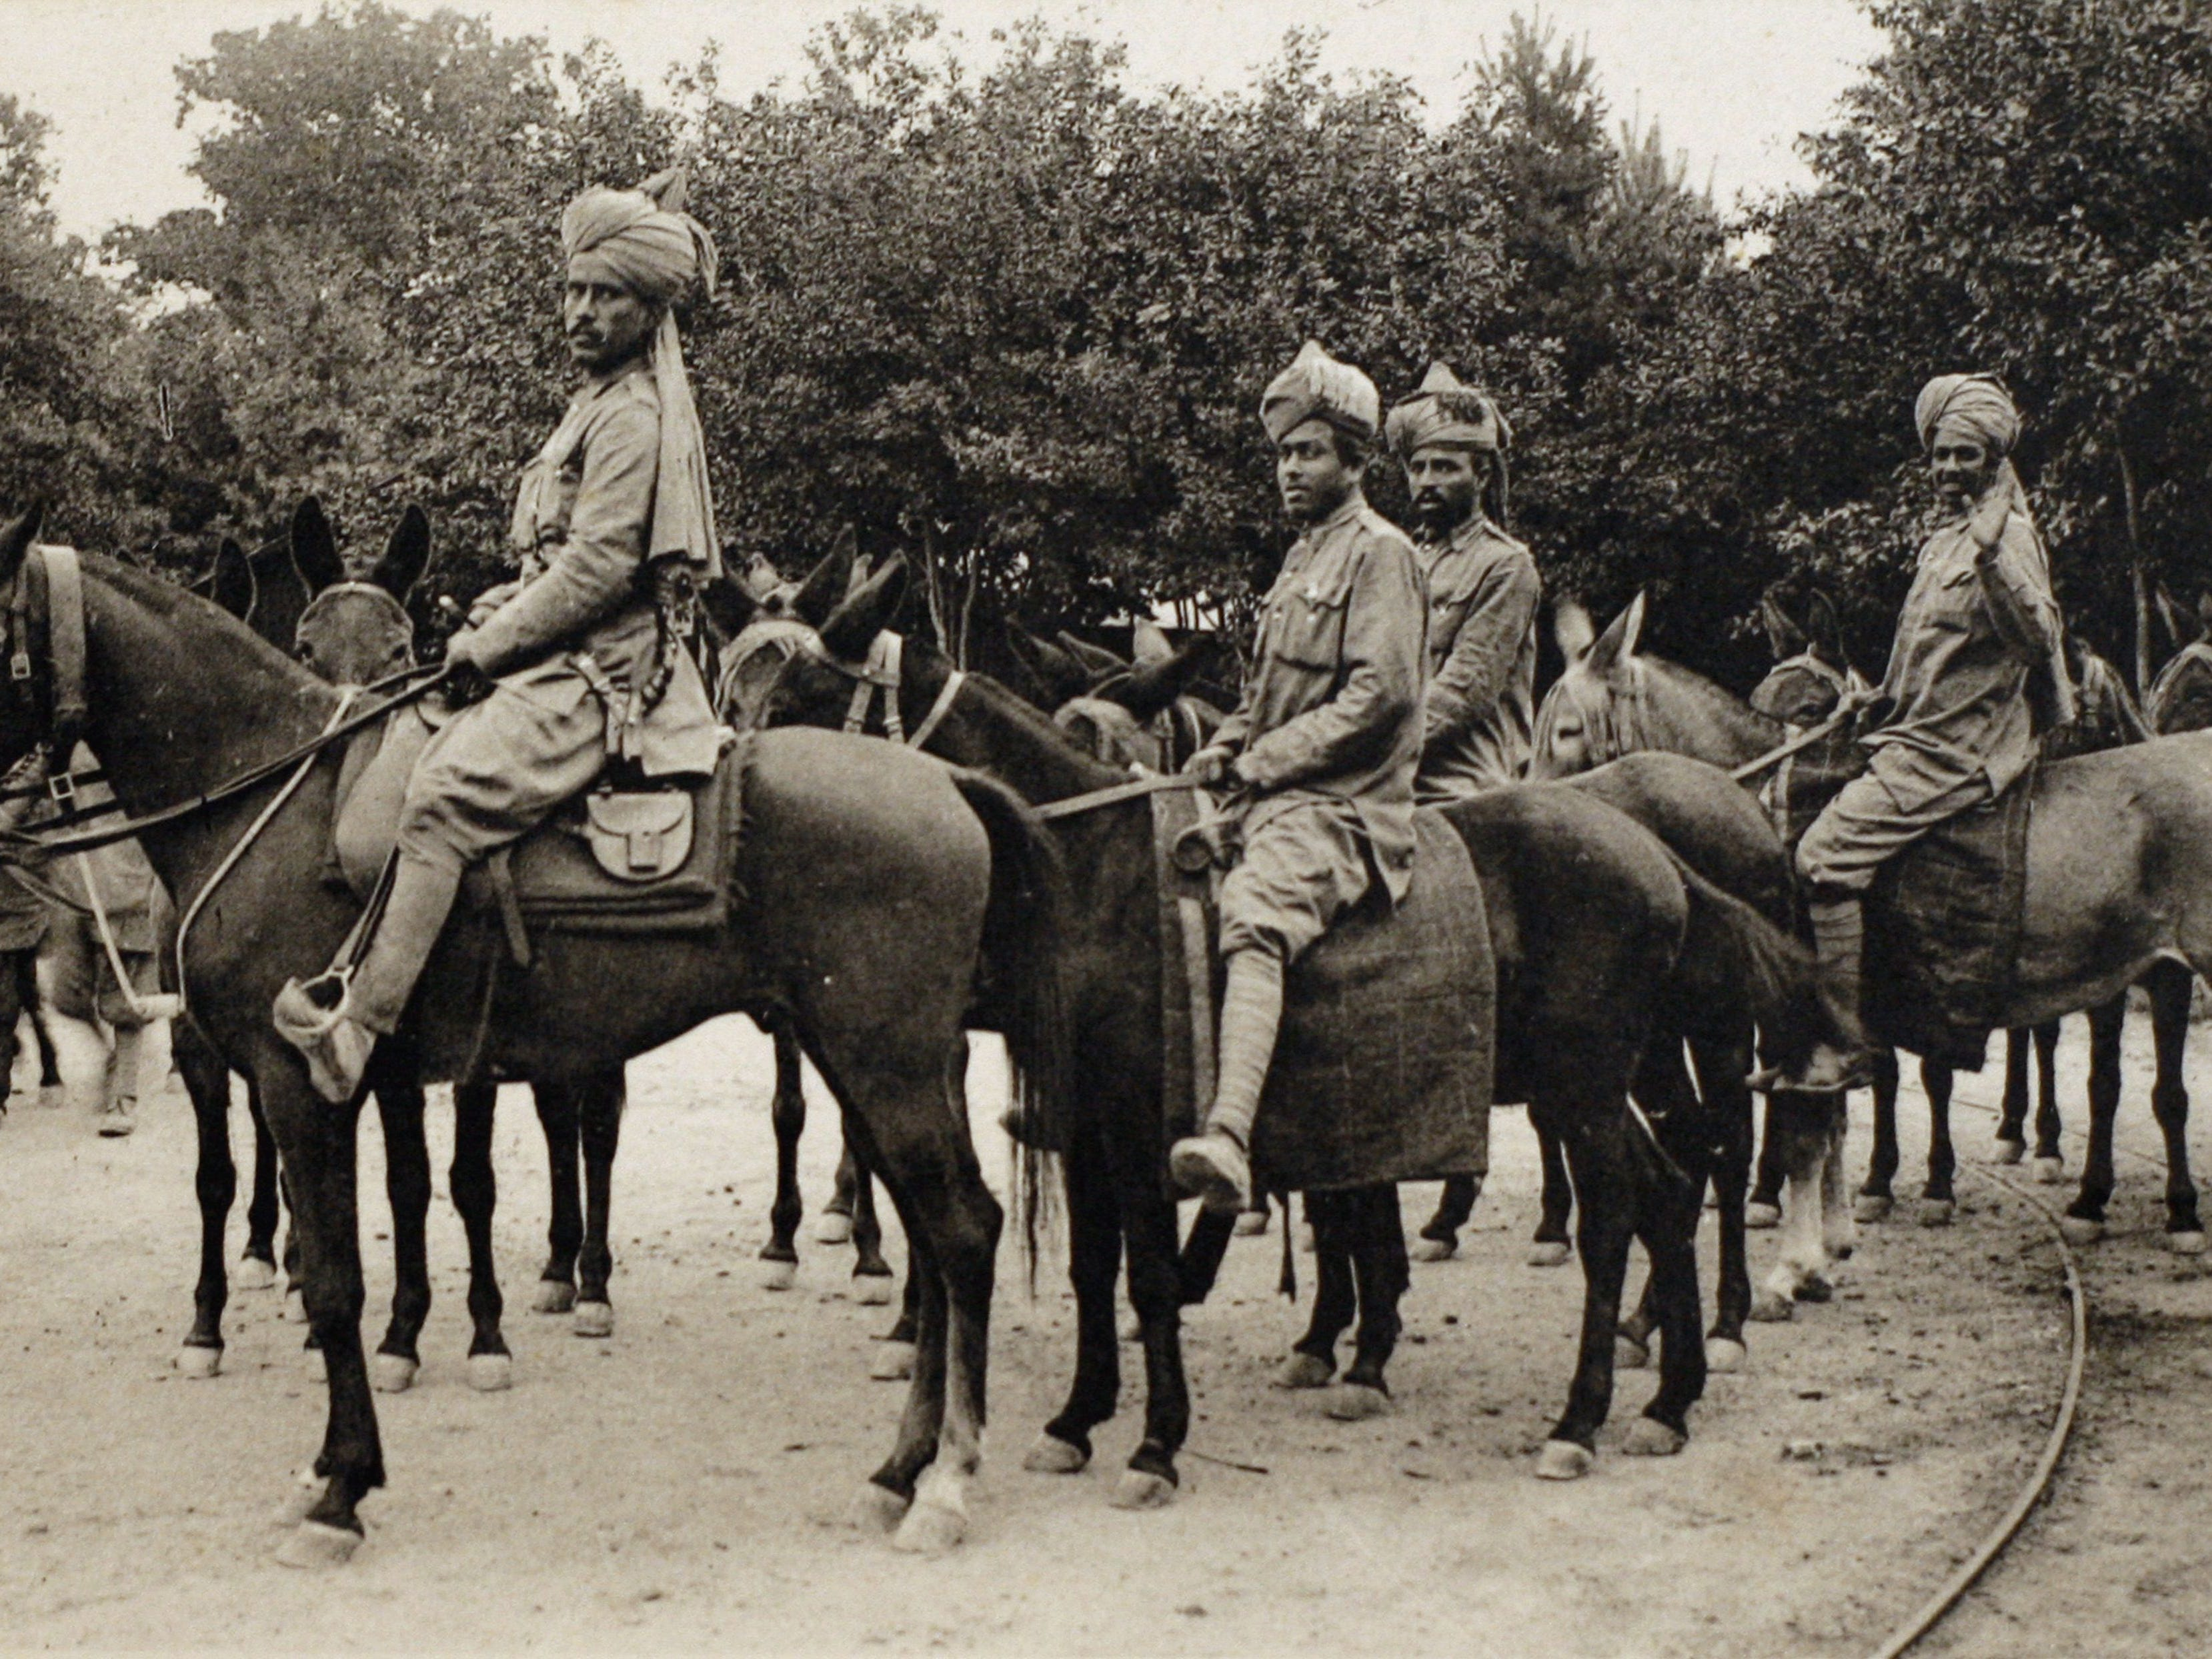 A photo taken in 1914 shows a postcard released by the Historial de Peronne (WWI Museum) of Indian cavalry troops from the British colonies in France.